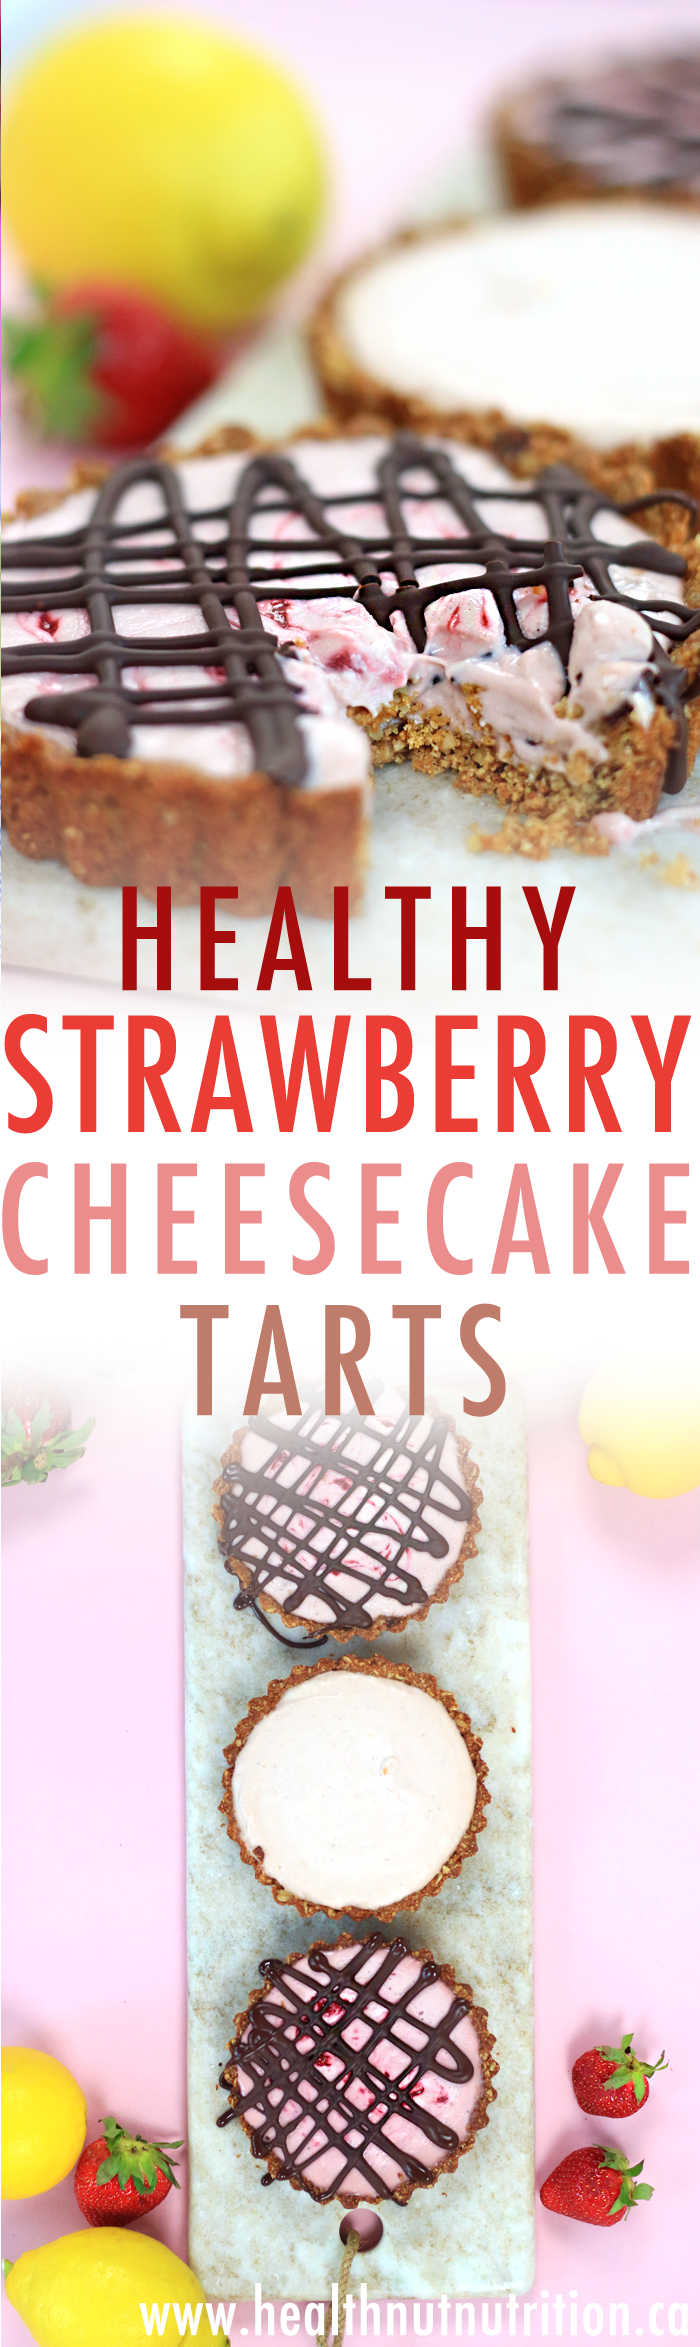 Healthy Strawberry Cheesecake Tarts | V, DF & GF